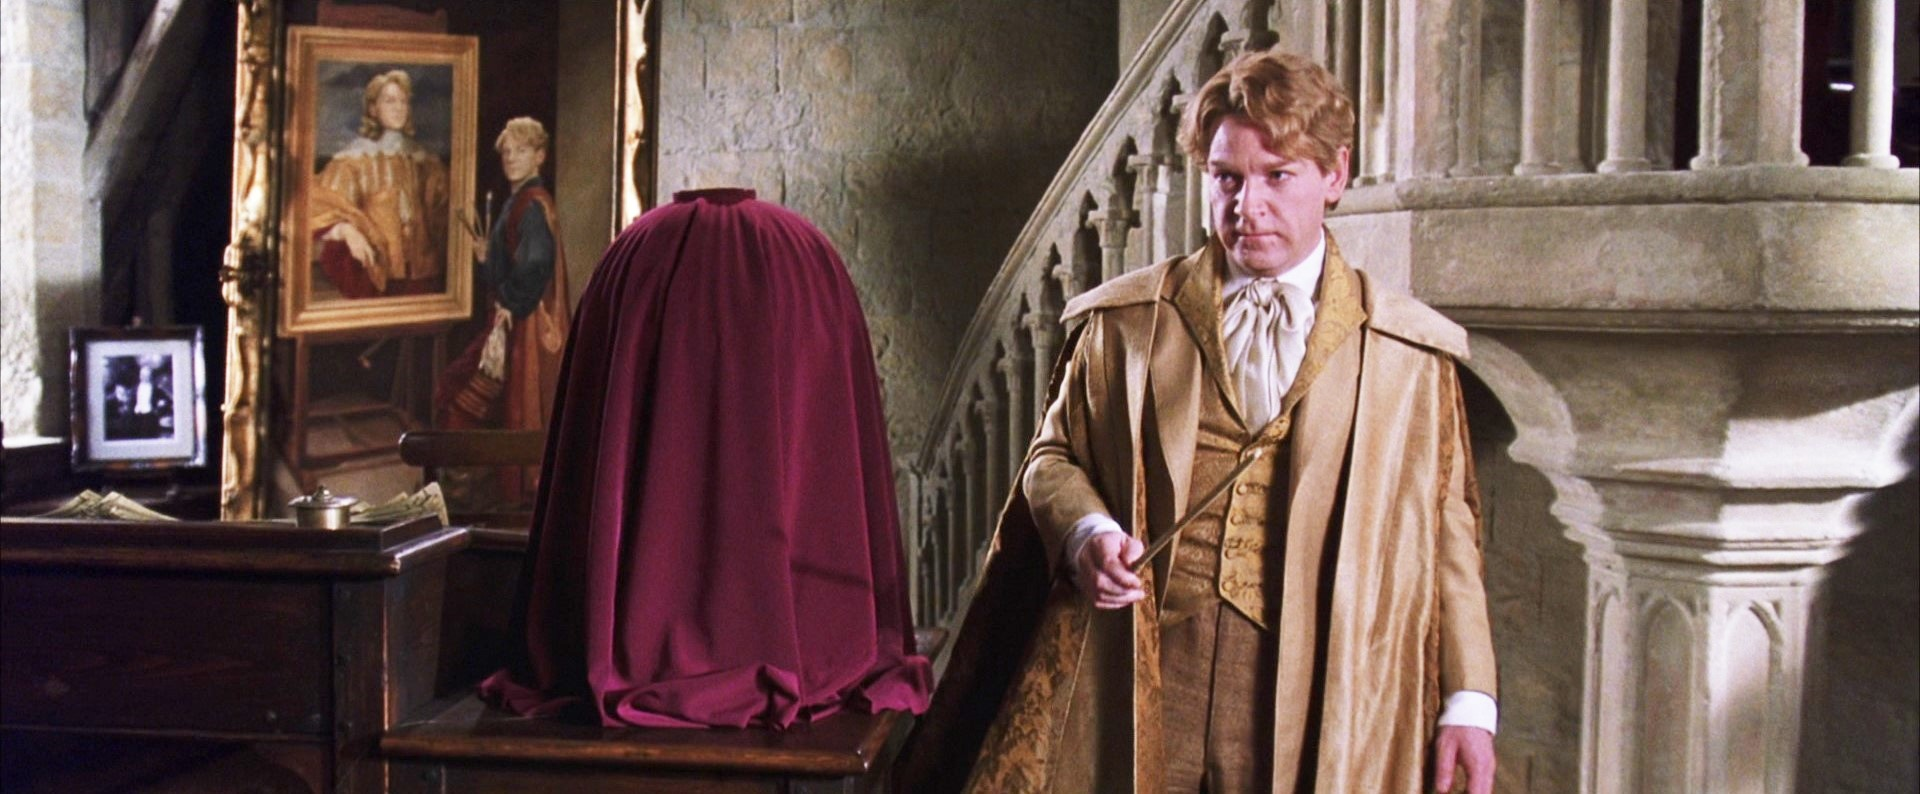 http://www.harry-potter.net.pl/images/articles/gilderoylockhart3.jpg